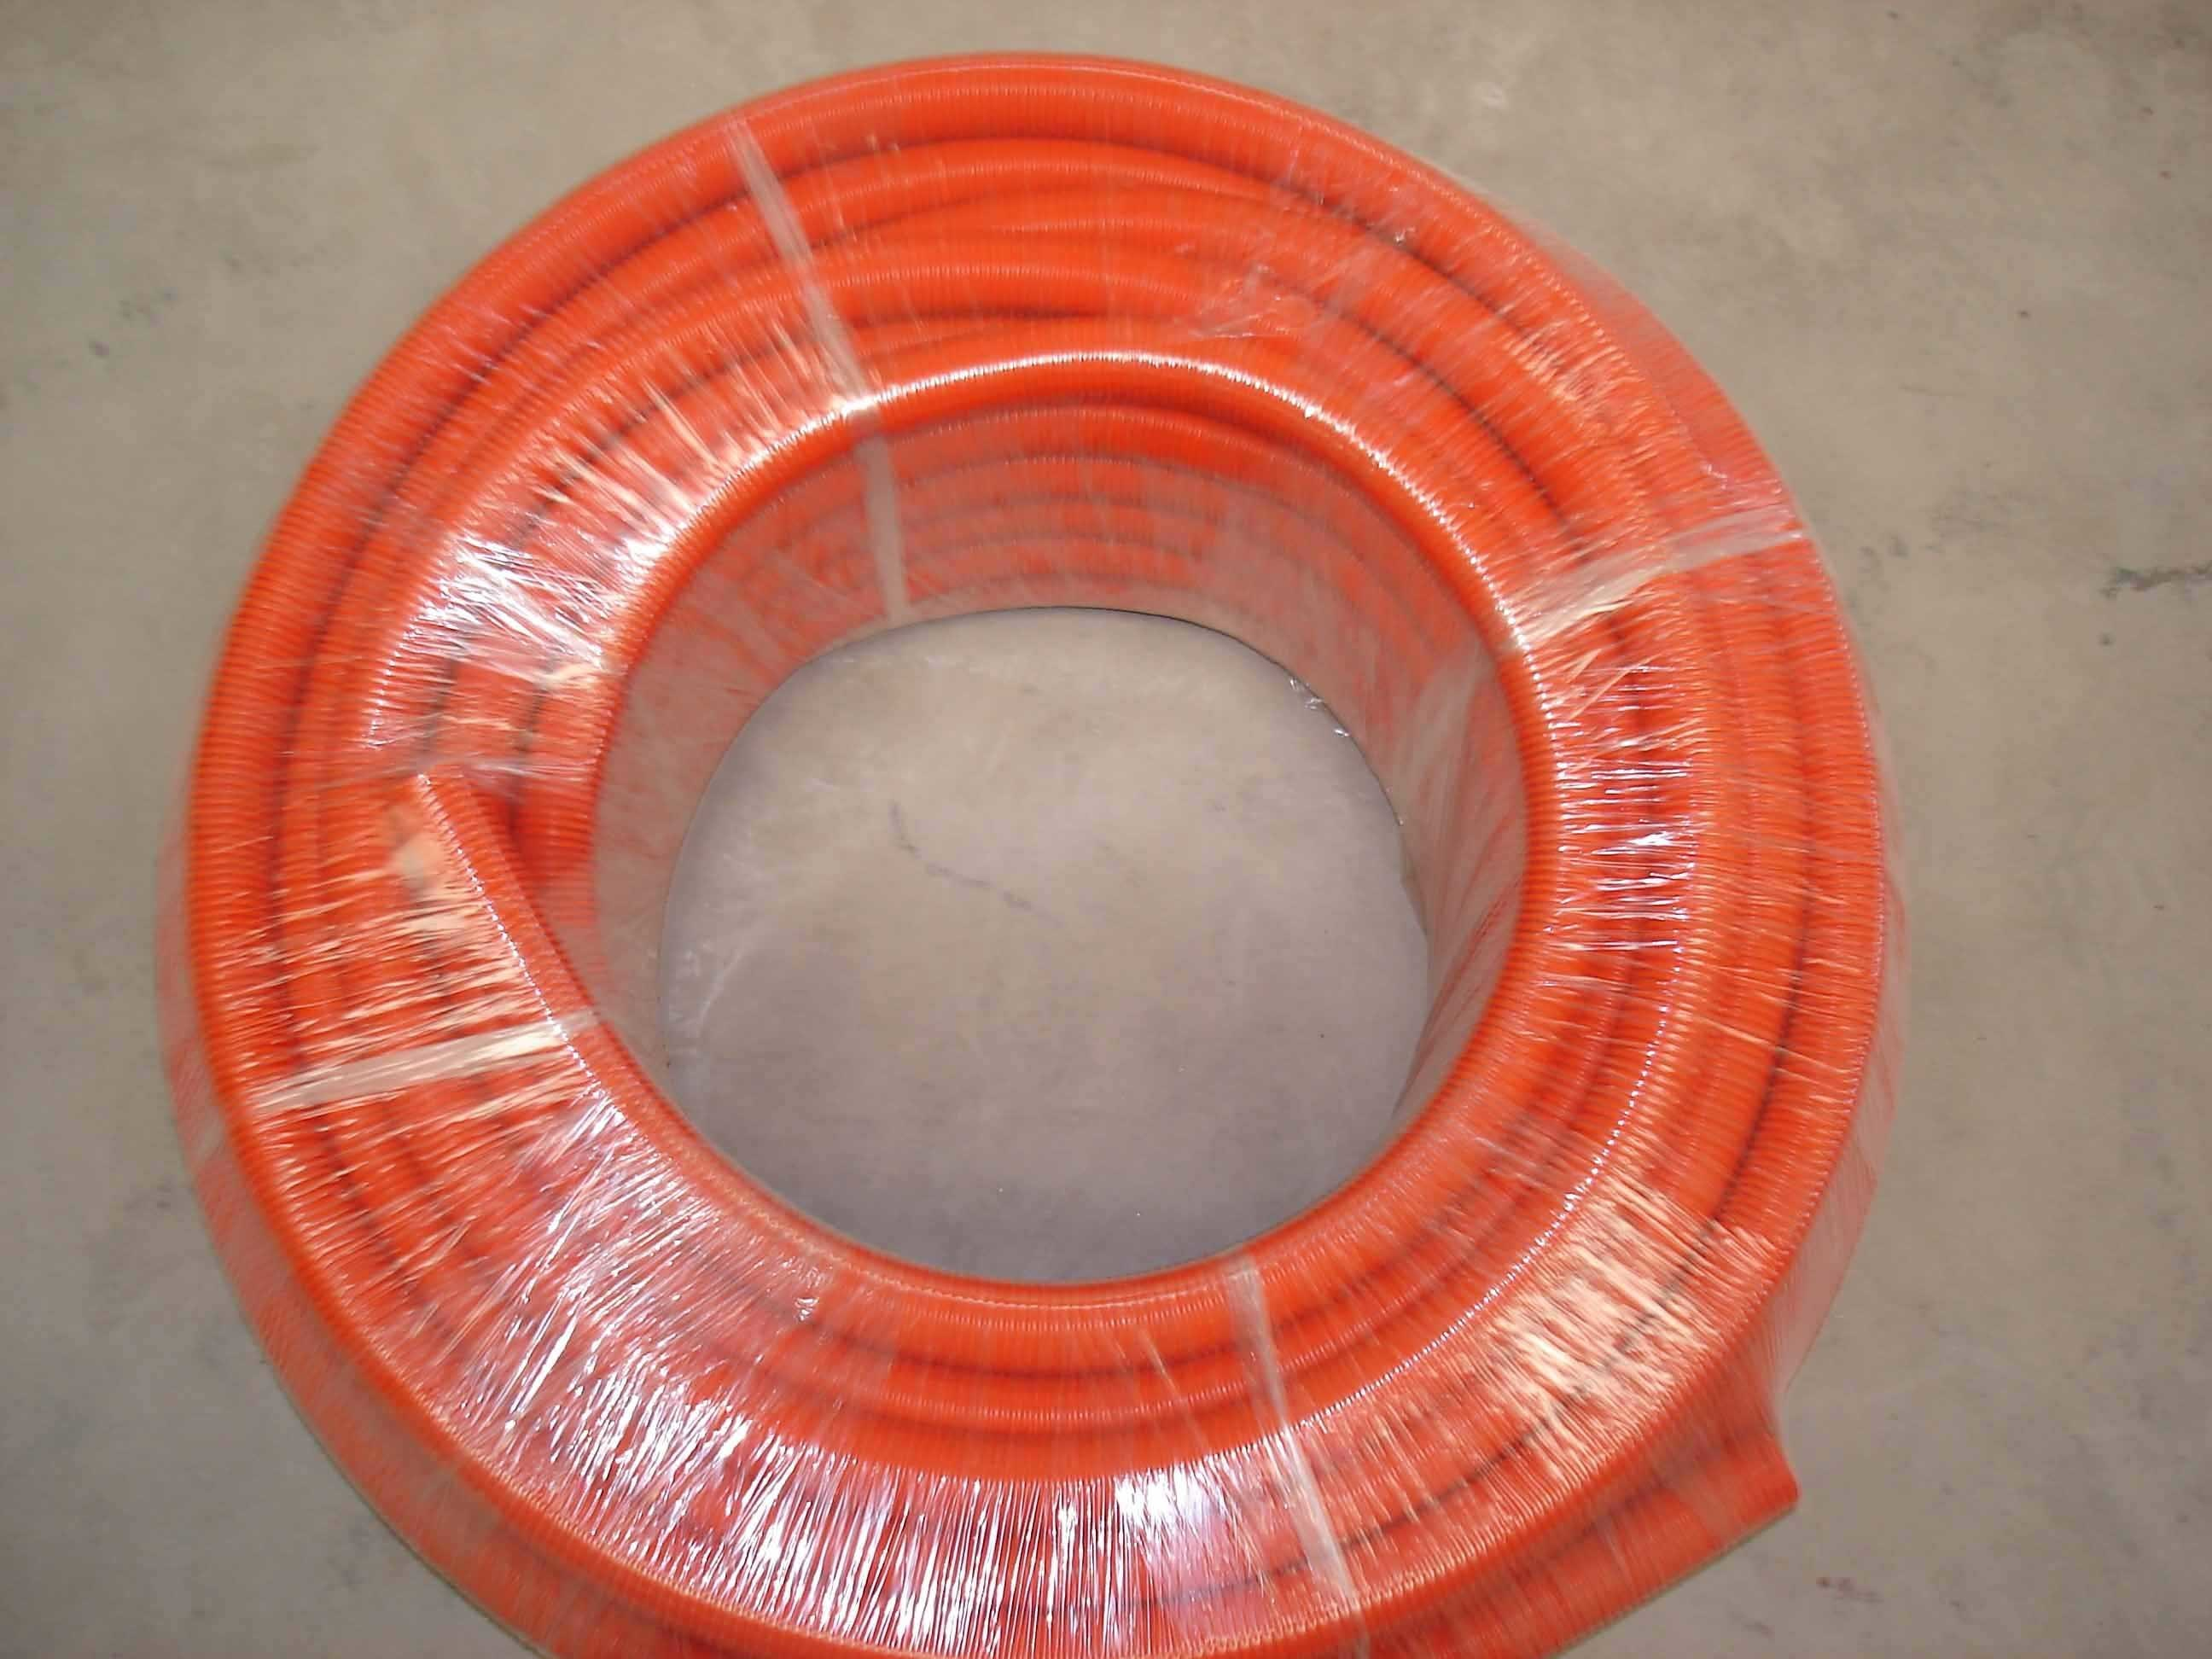 UPVC Flexible Conduit, Flexible Pipe, Corrugated Pipe, Corrugated Conduit